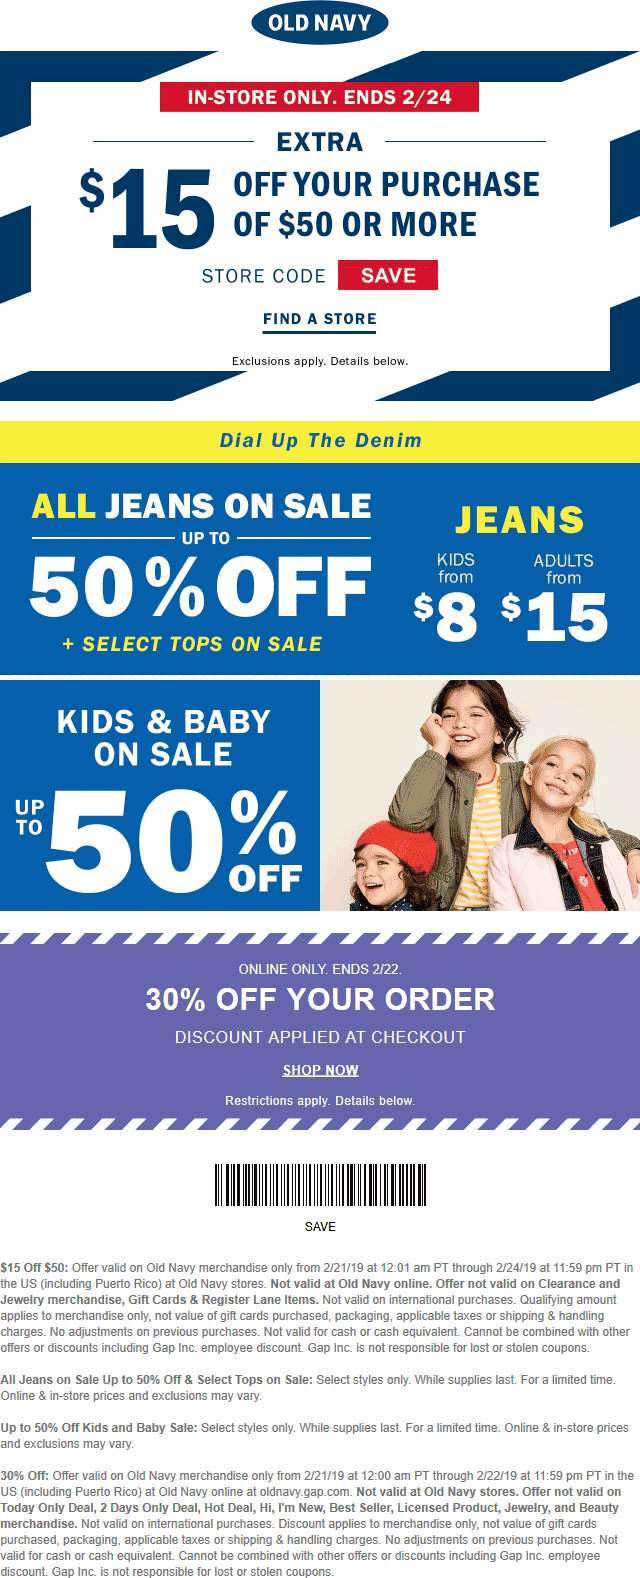 Old Navy Coupon February 2020 $15 off $50 at Old Navy, or 30% online